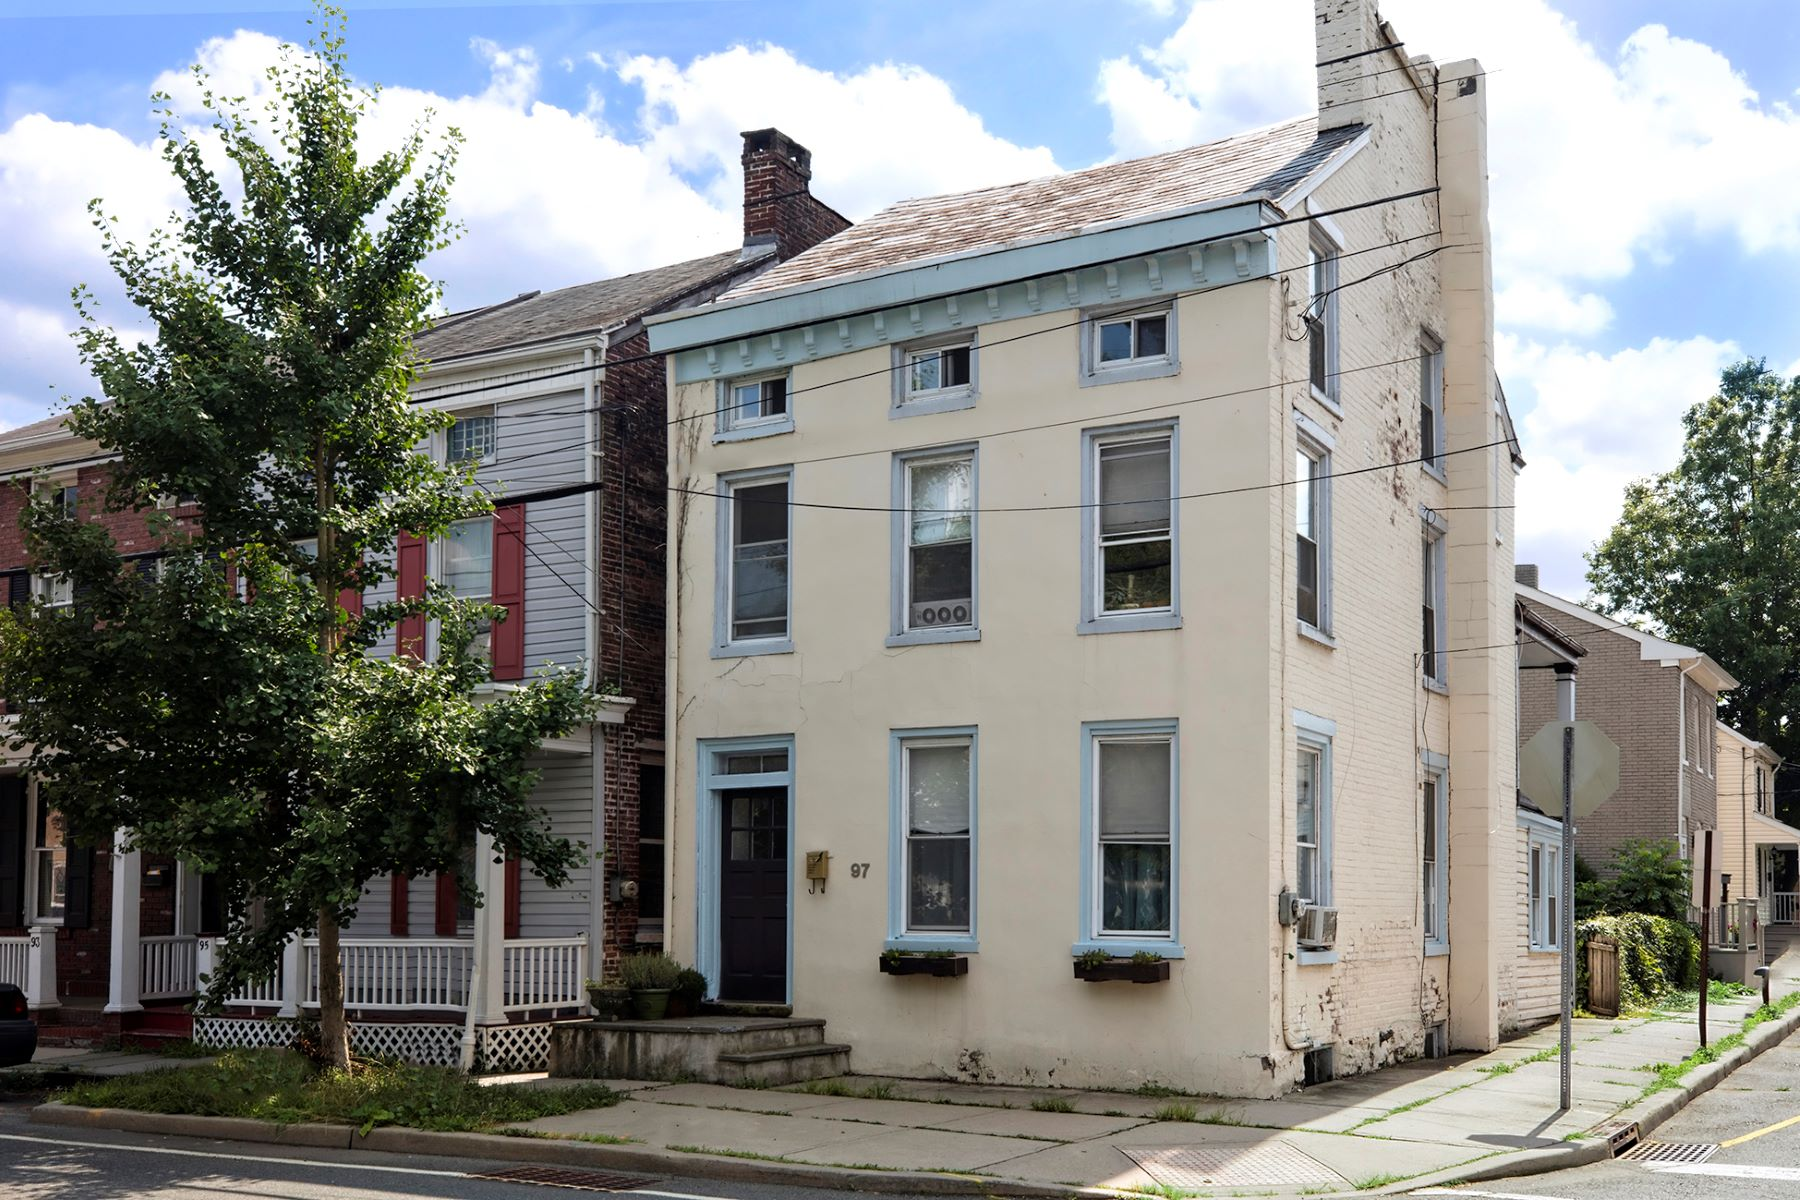 Property for Sale at All The Space You Could Need 97 North Main Street, Lambertville, New Jersey 08530 United States